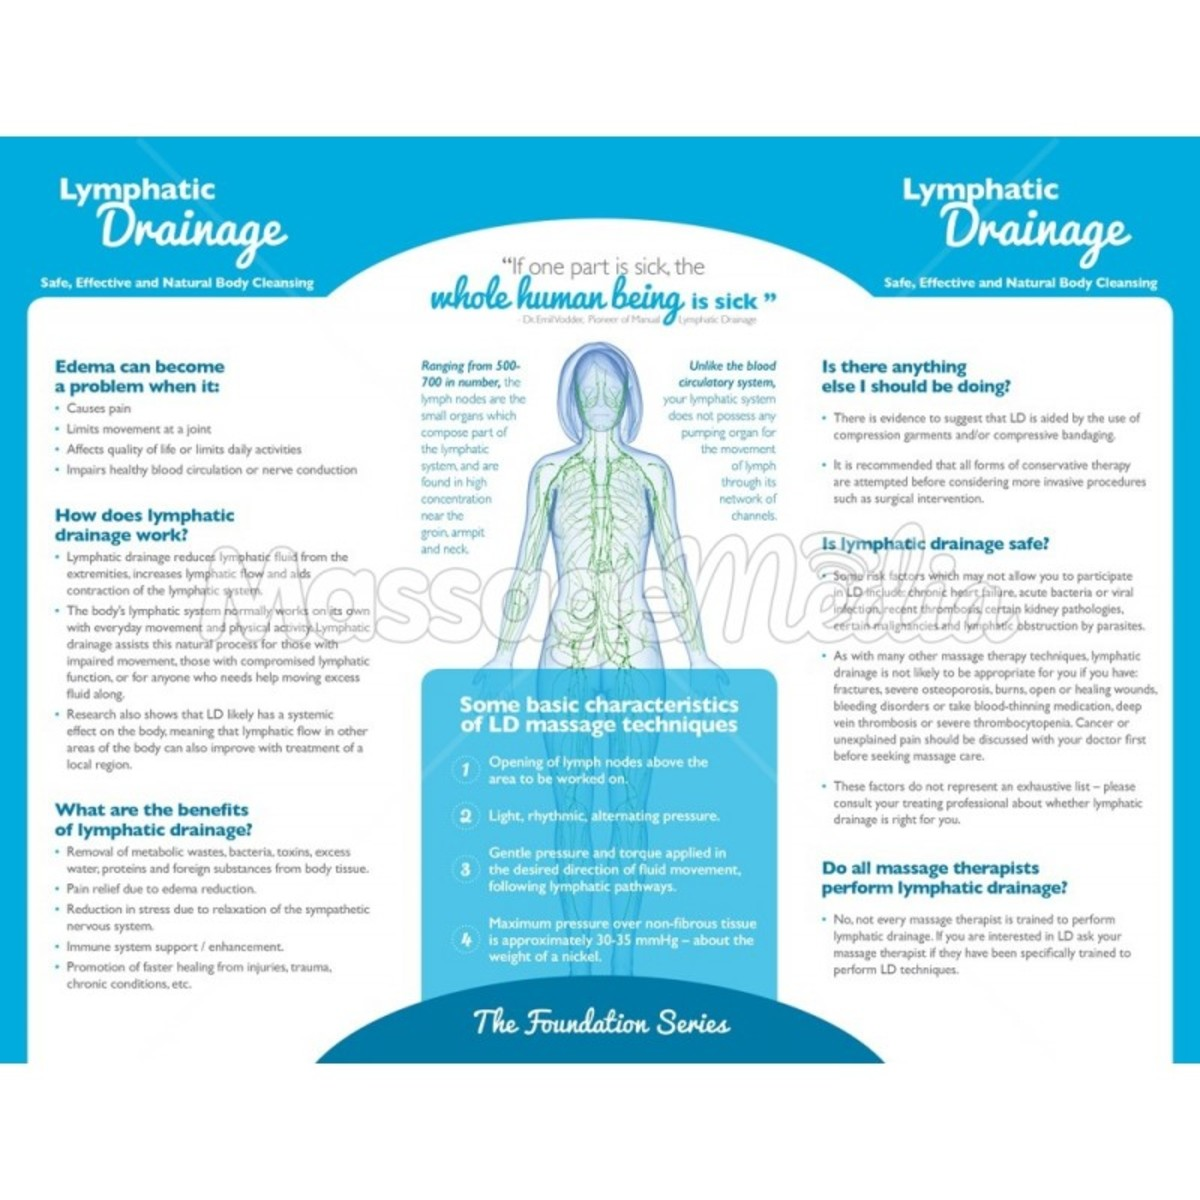 Lymphatic Drainage Extends the Life of Cancer Patients